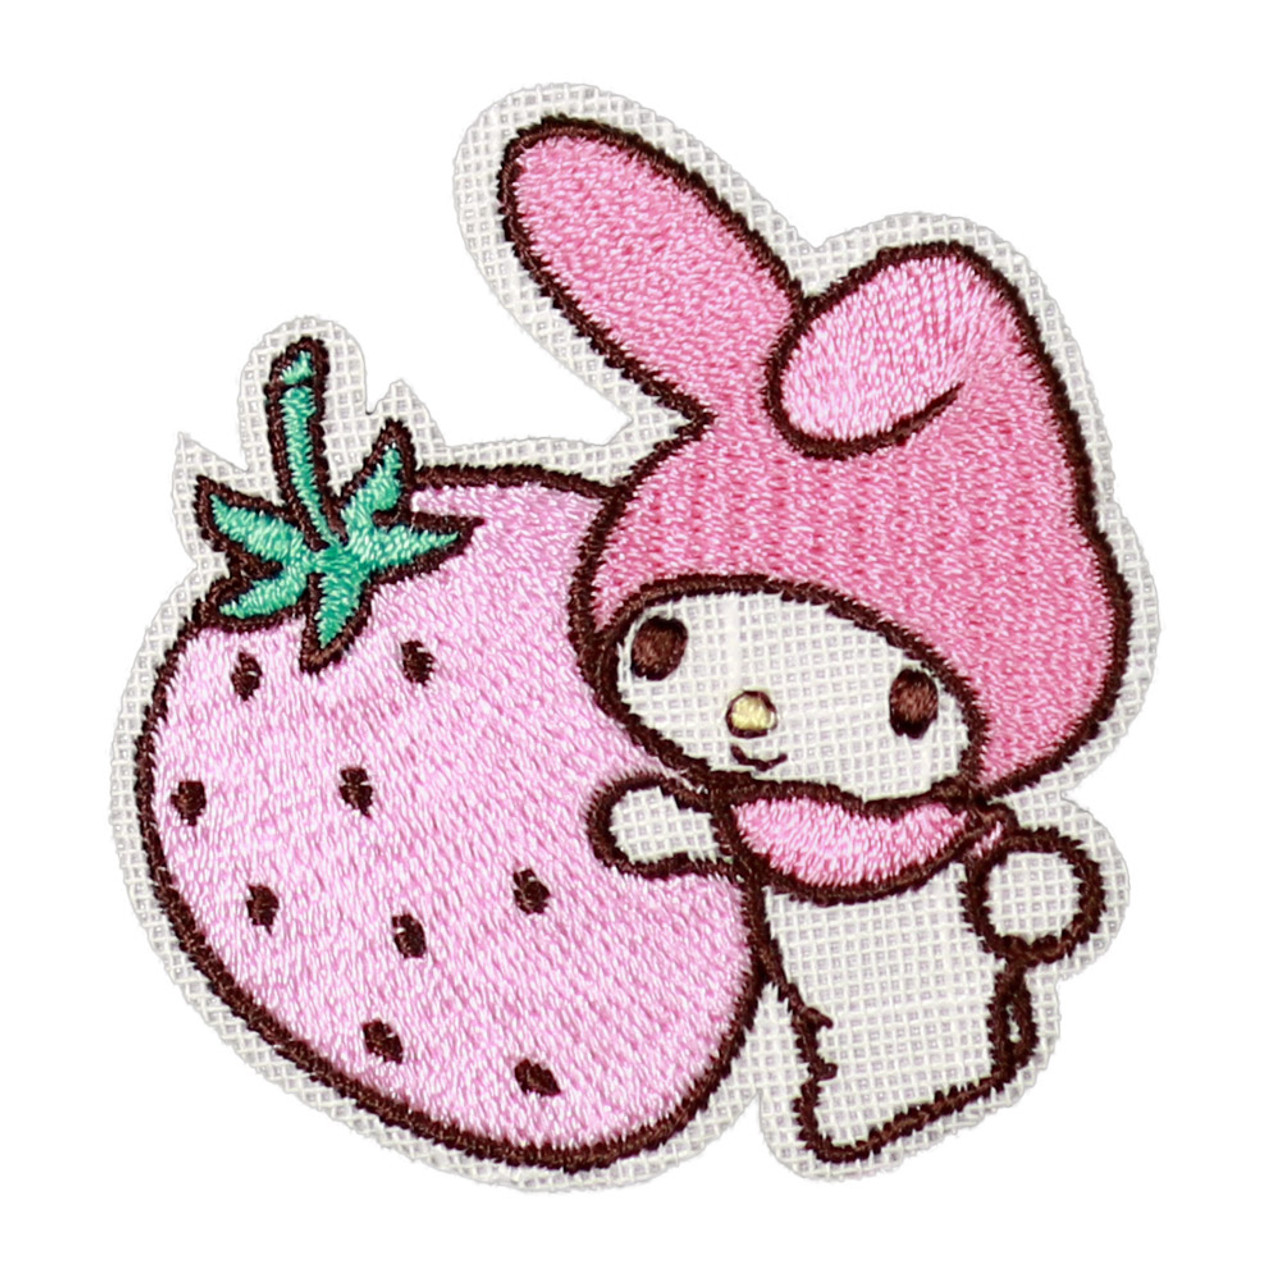 Sanrio My Melody Iron On Patch - Hug Strawberry KNS03 ( Front View )